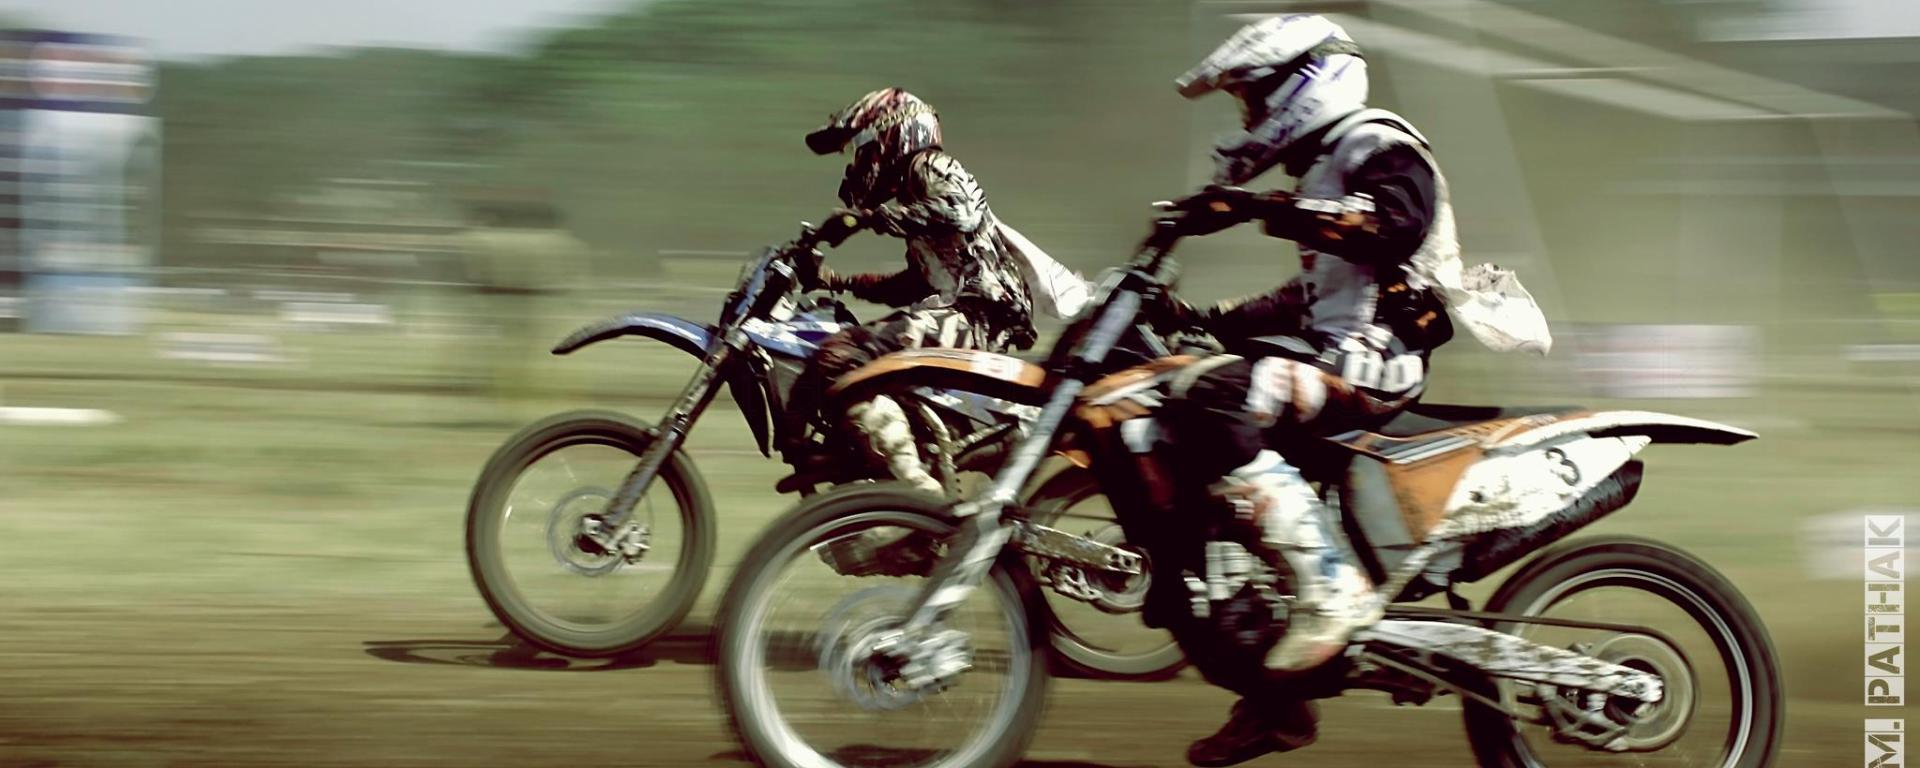 Gulf dirt track F.M.S.C.I National championship captured by Just Nashik